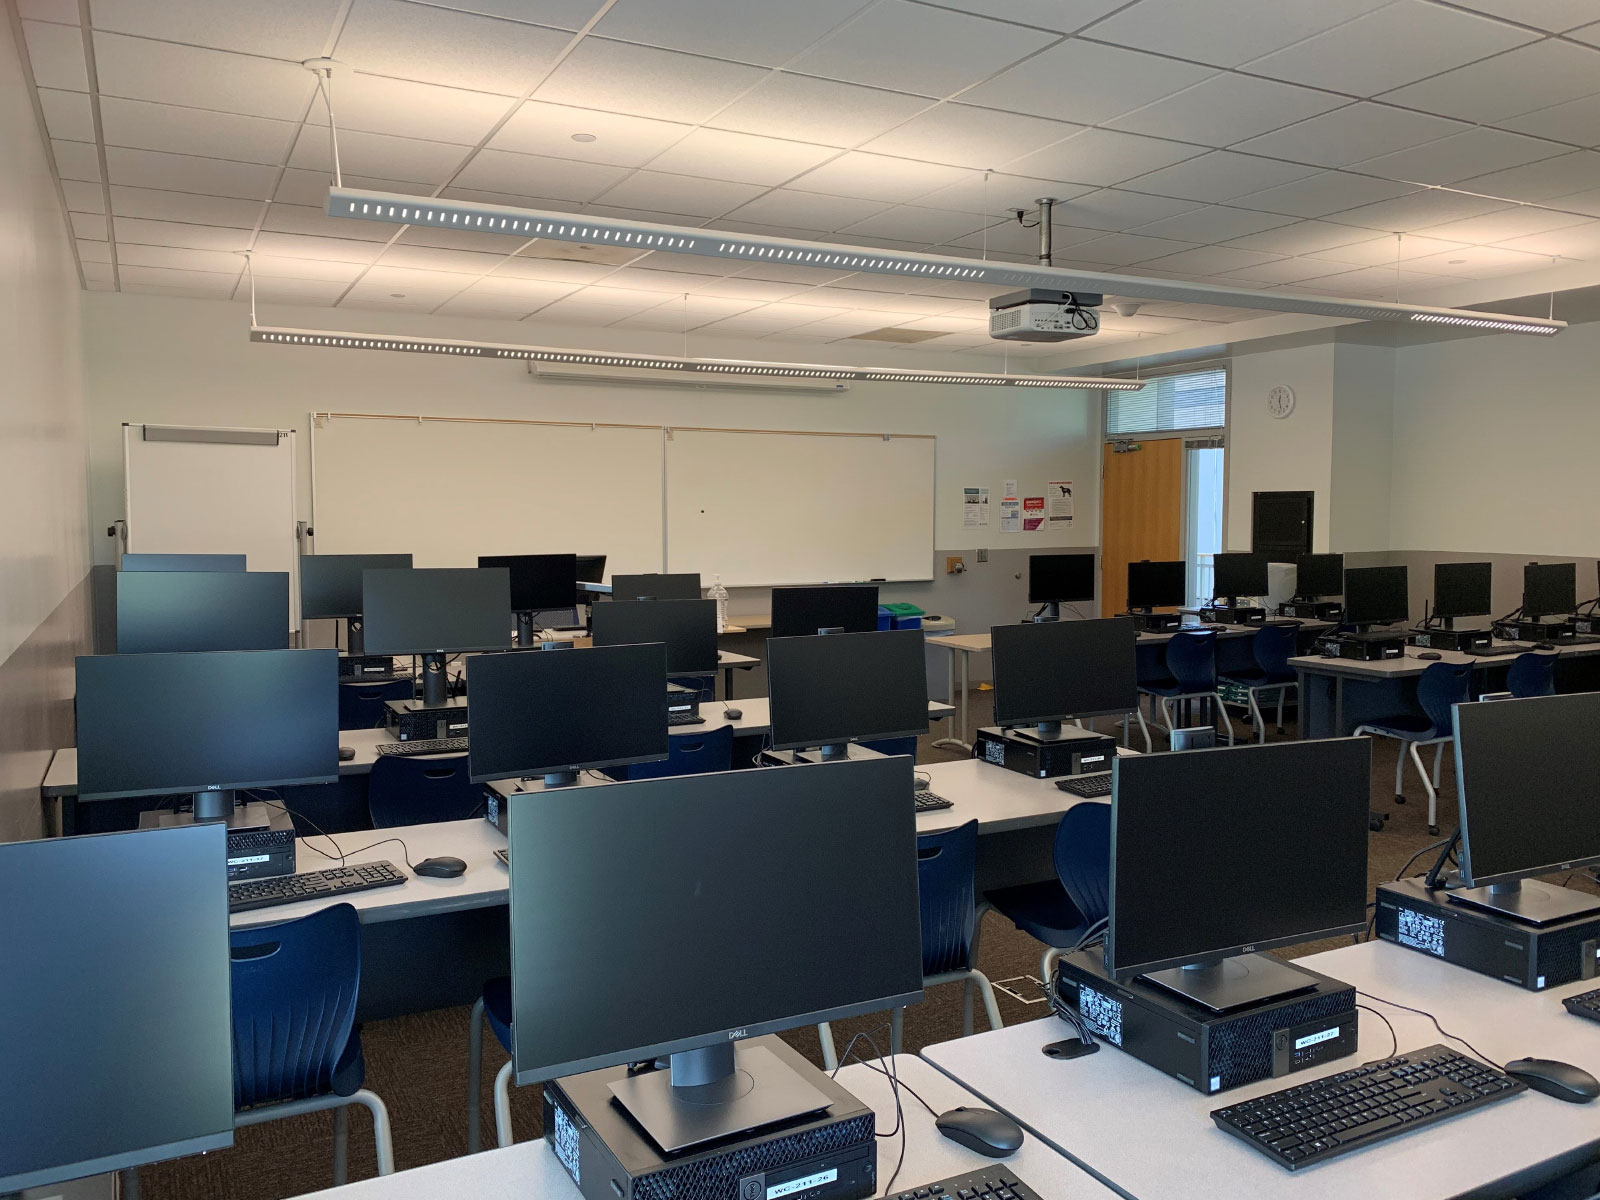 Angled close-up of rows of computers on desks in Wilsonville's Computer Lab W211